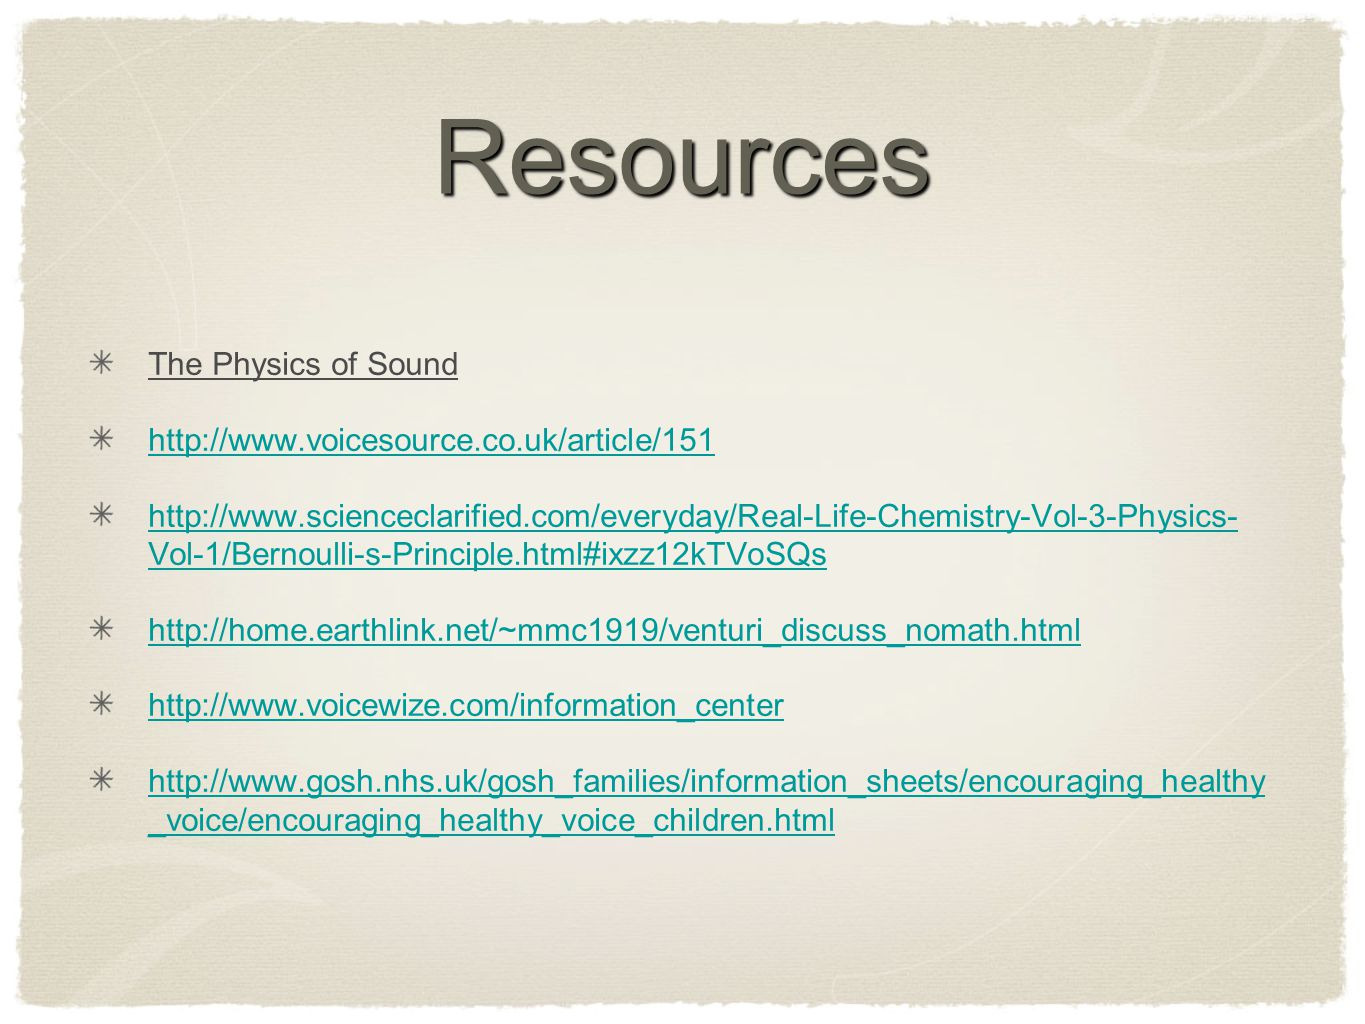 Resources The Physics of Sound http://www.voicesource.co.uk/article/151 http://www.scienceclarified.com/everyday/Real-Life-Chemistry-Vol-3-Physics- Vol-1/Bernoulli-s-Principle.html#ixzz12kTVoSQs http://home.earthlink.net/~mmc1919/venturi_discuss_nomath.html http://www.voicewize.com/information_center http://www.gosh.nhs.uk/gosh_families/information_sheets/encouraging_healthy _voice/encouraging_healthy_voice_children.html